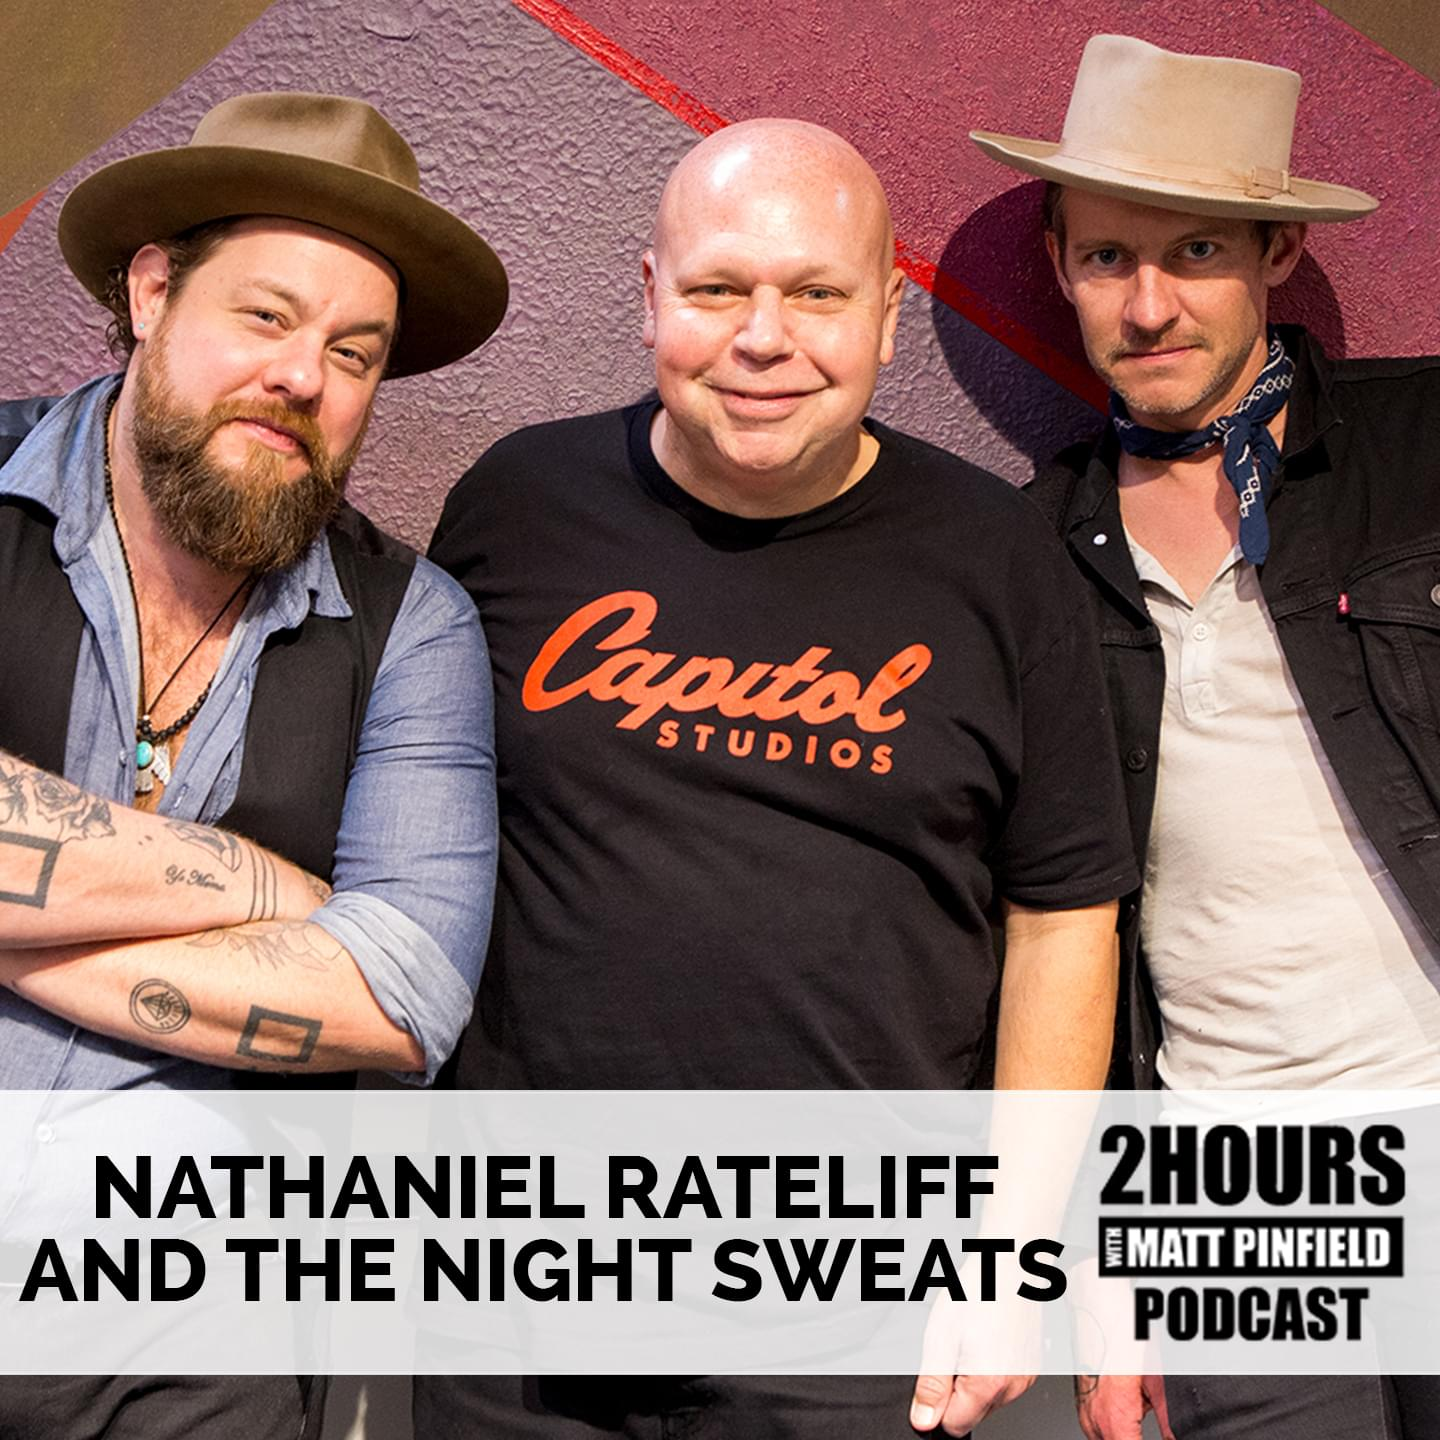 Podcast: Nathaniel Rateliff and the Night Sweats